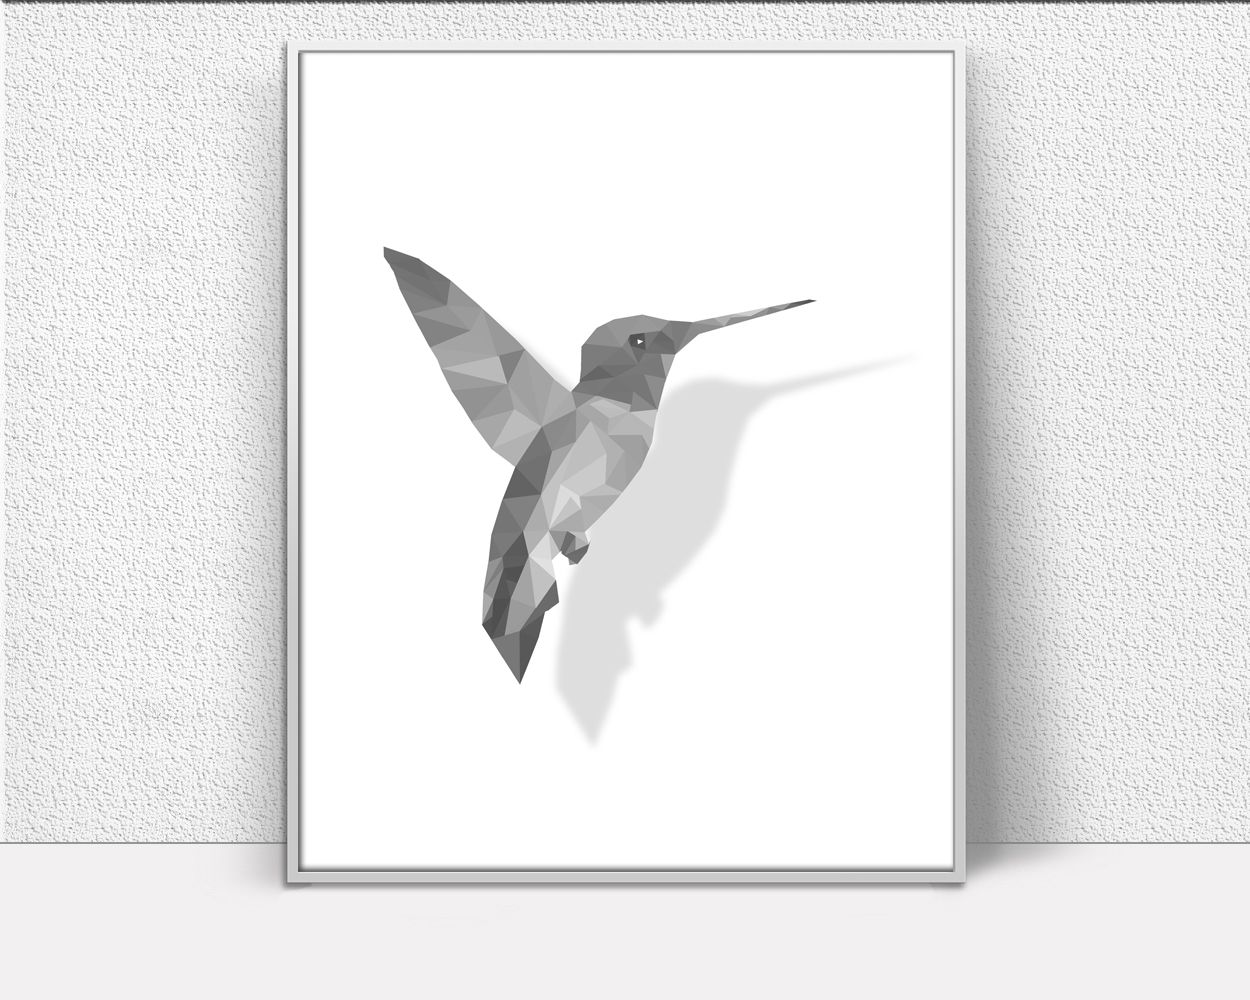 Hummingbird Art, Low Poly Prints, Drop Shadow Art, Inspirational Wall Art, office gift, Art Printables, Creative Home Decor #wallart #posters #inspirational